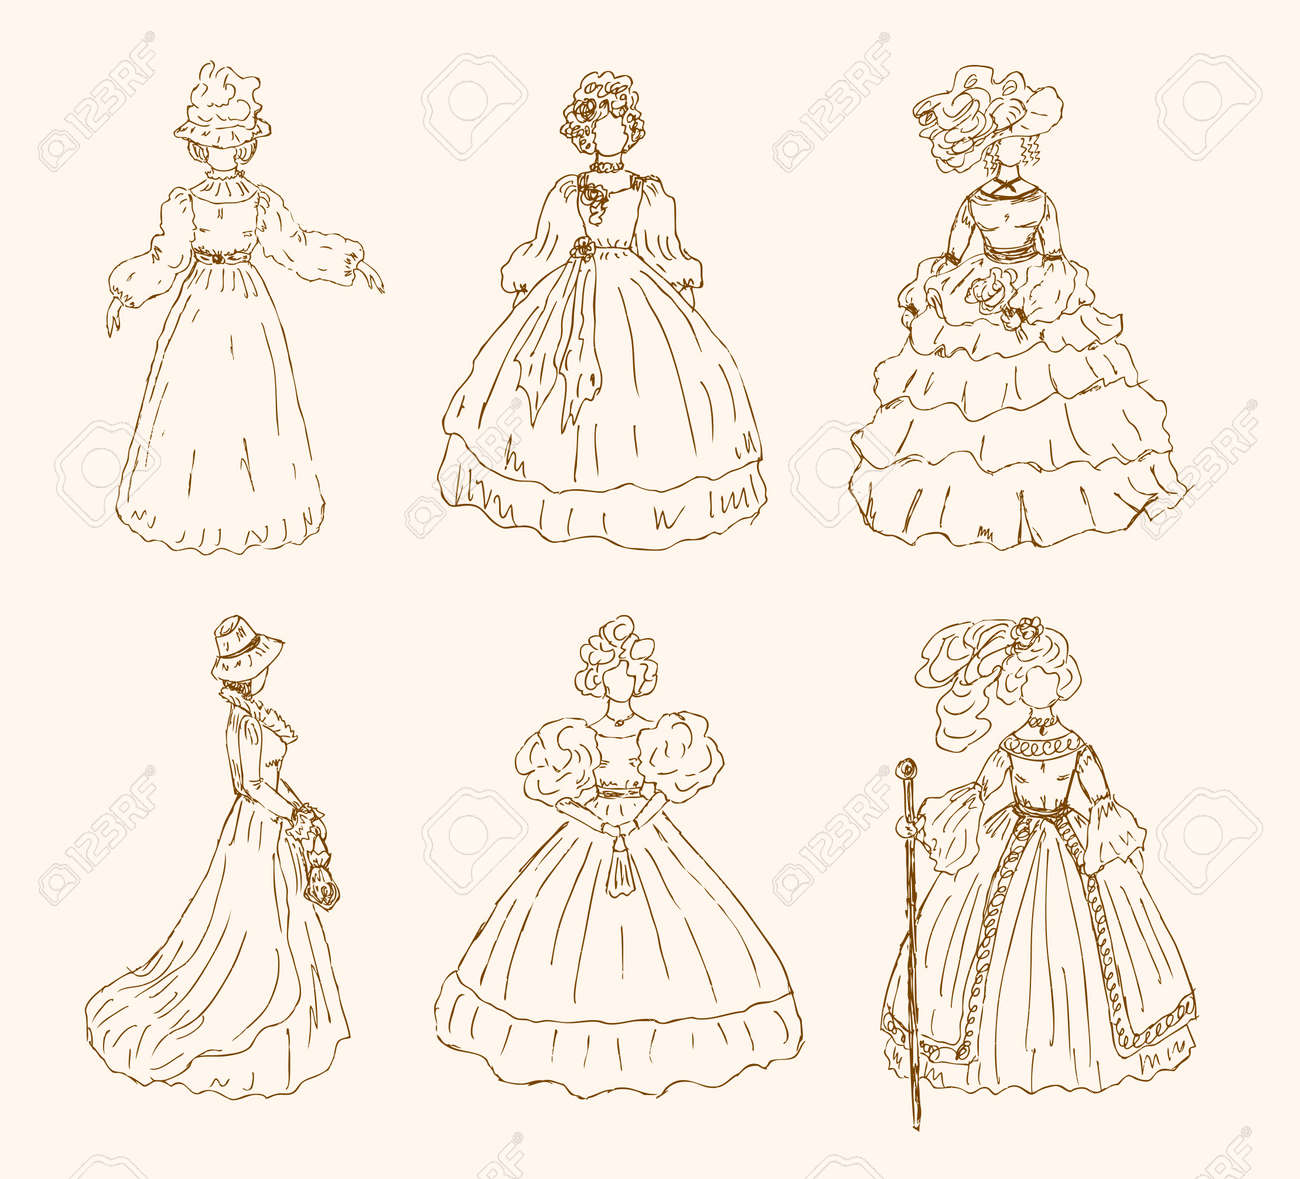 Vector - Women sketchy collection in retro style Ladies in vintage dresses  Set of hand drawn retro women silhouettes